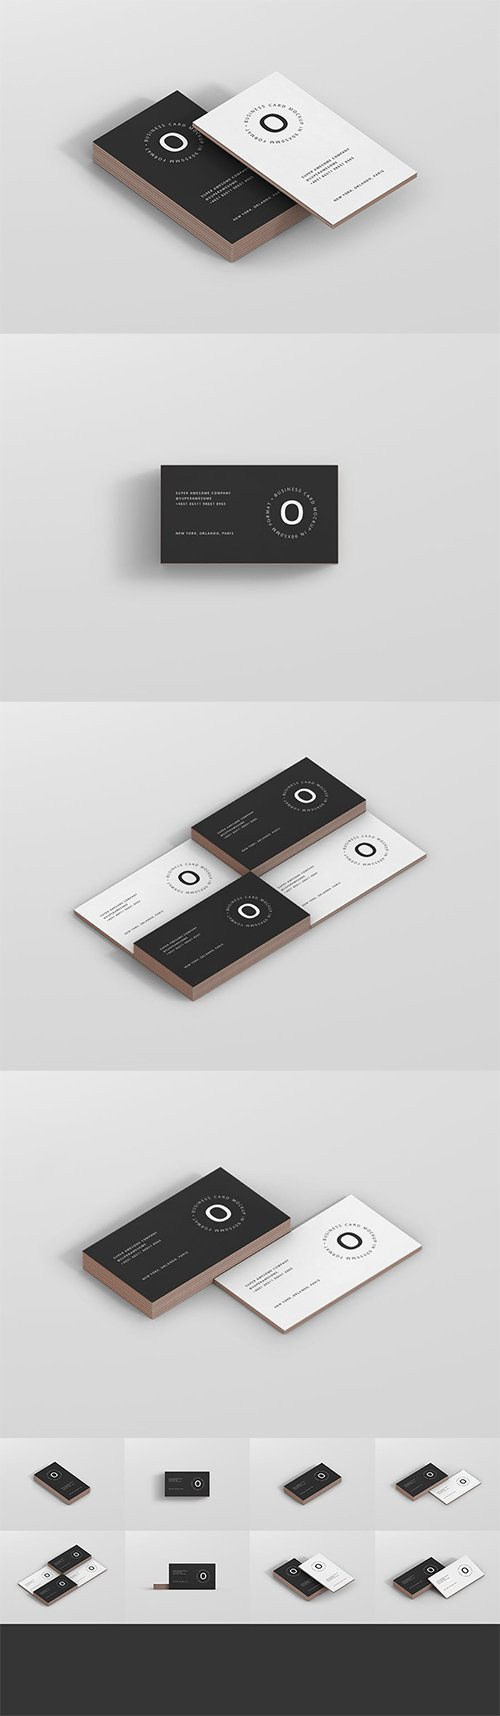 Business Card Stack Mockup 90x50 Format